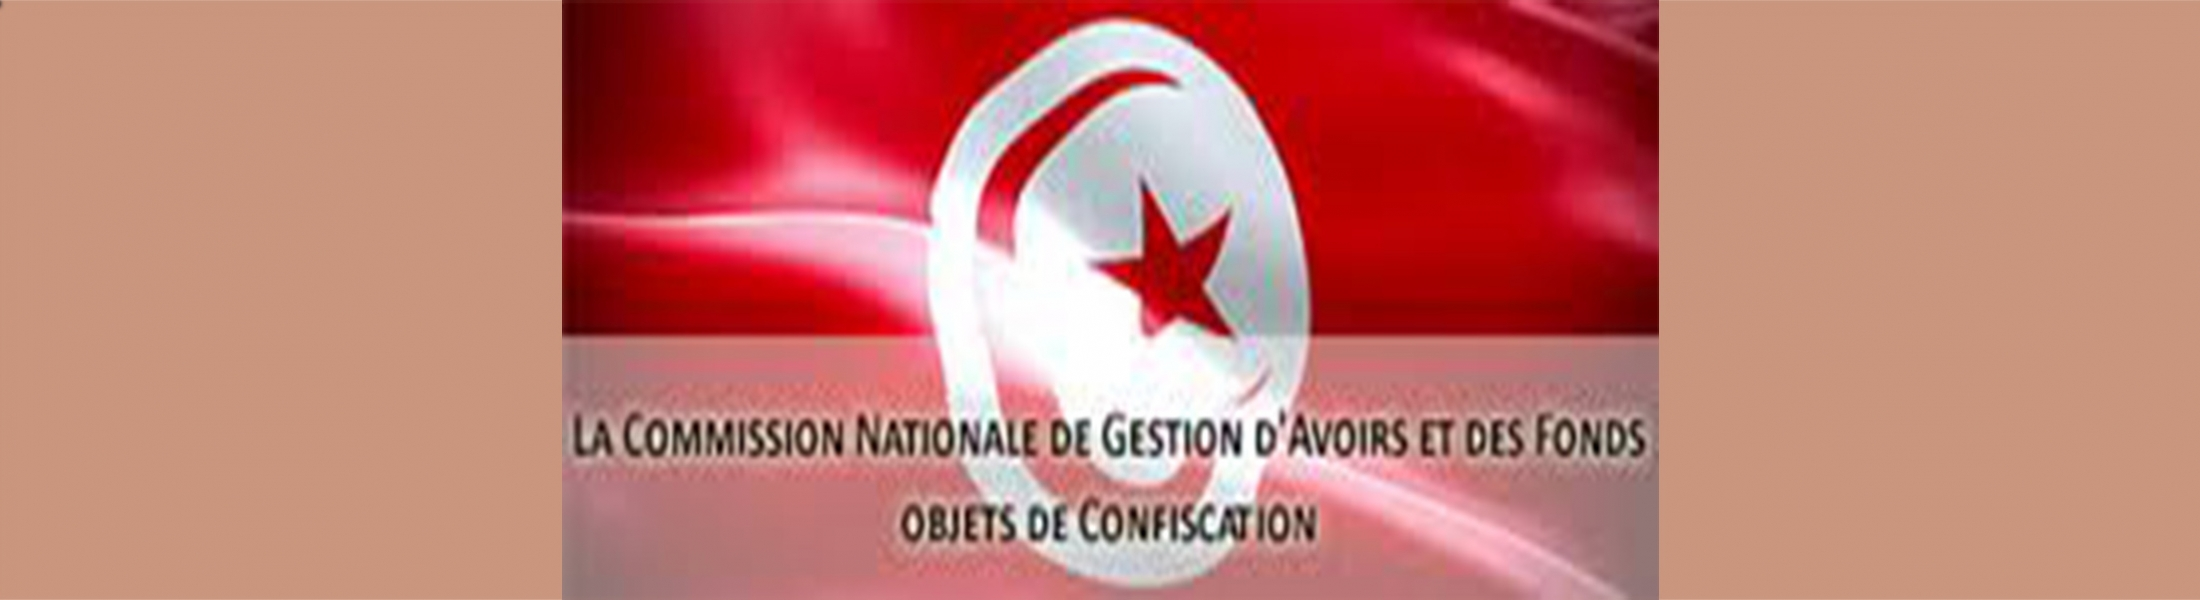 Avis de Consultation Nationale n°01/2020